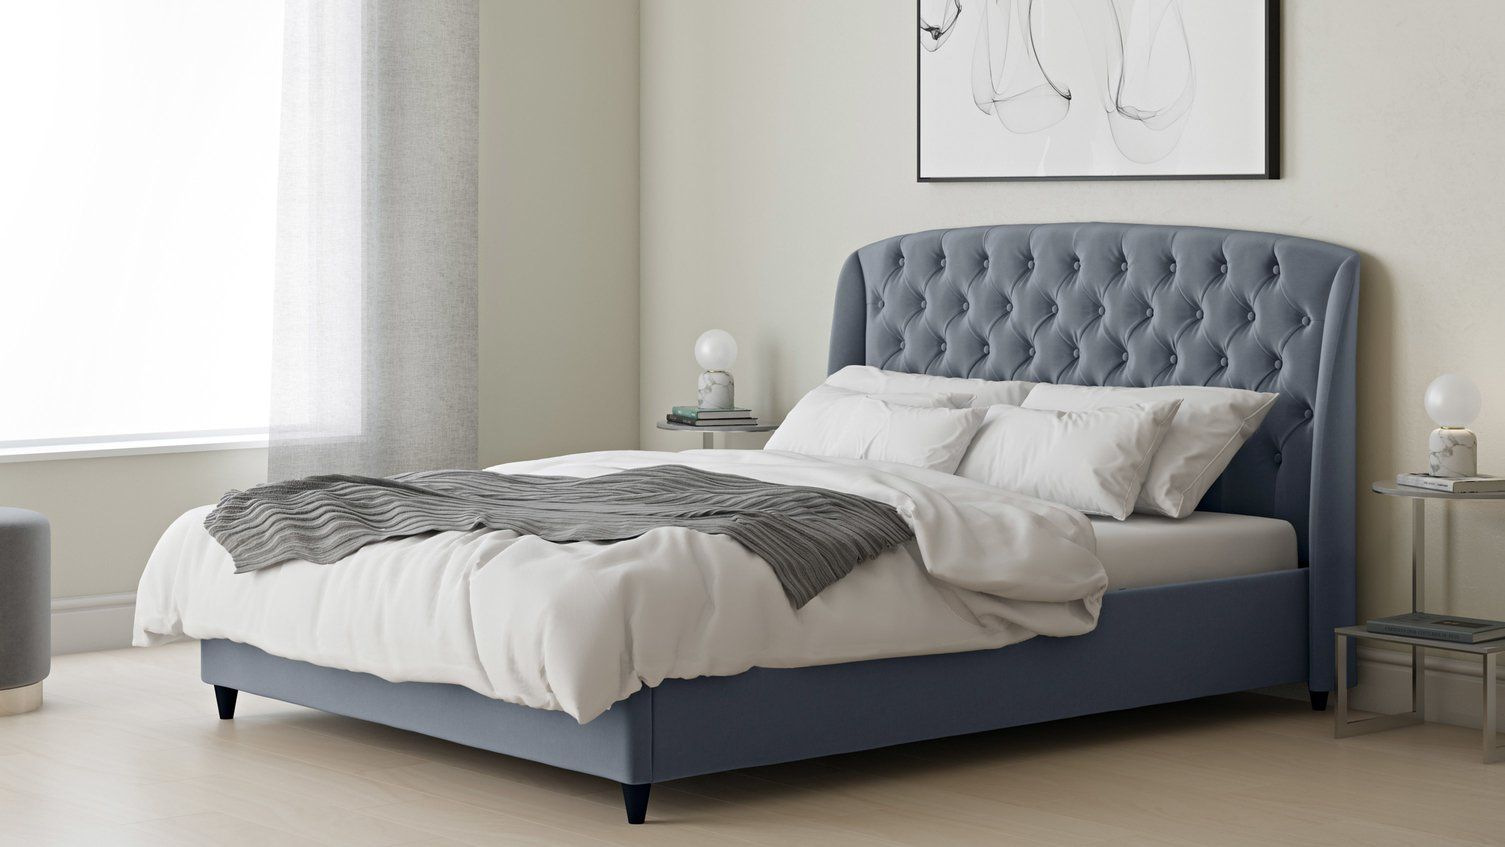 Phenomenal Manolo Pewter Velvet Double Bed With Storage Danetti Beatyapartments Chair Design Images Beatyapartmentscom